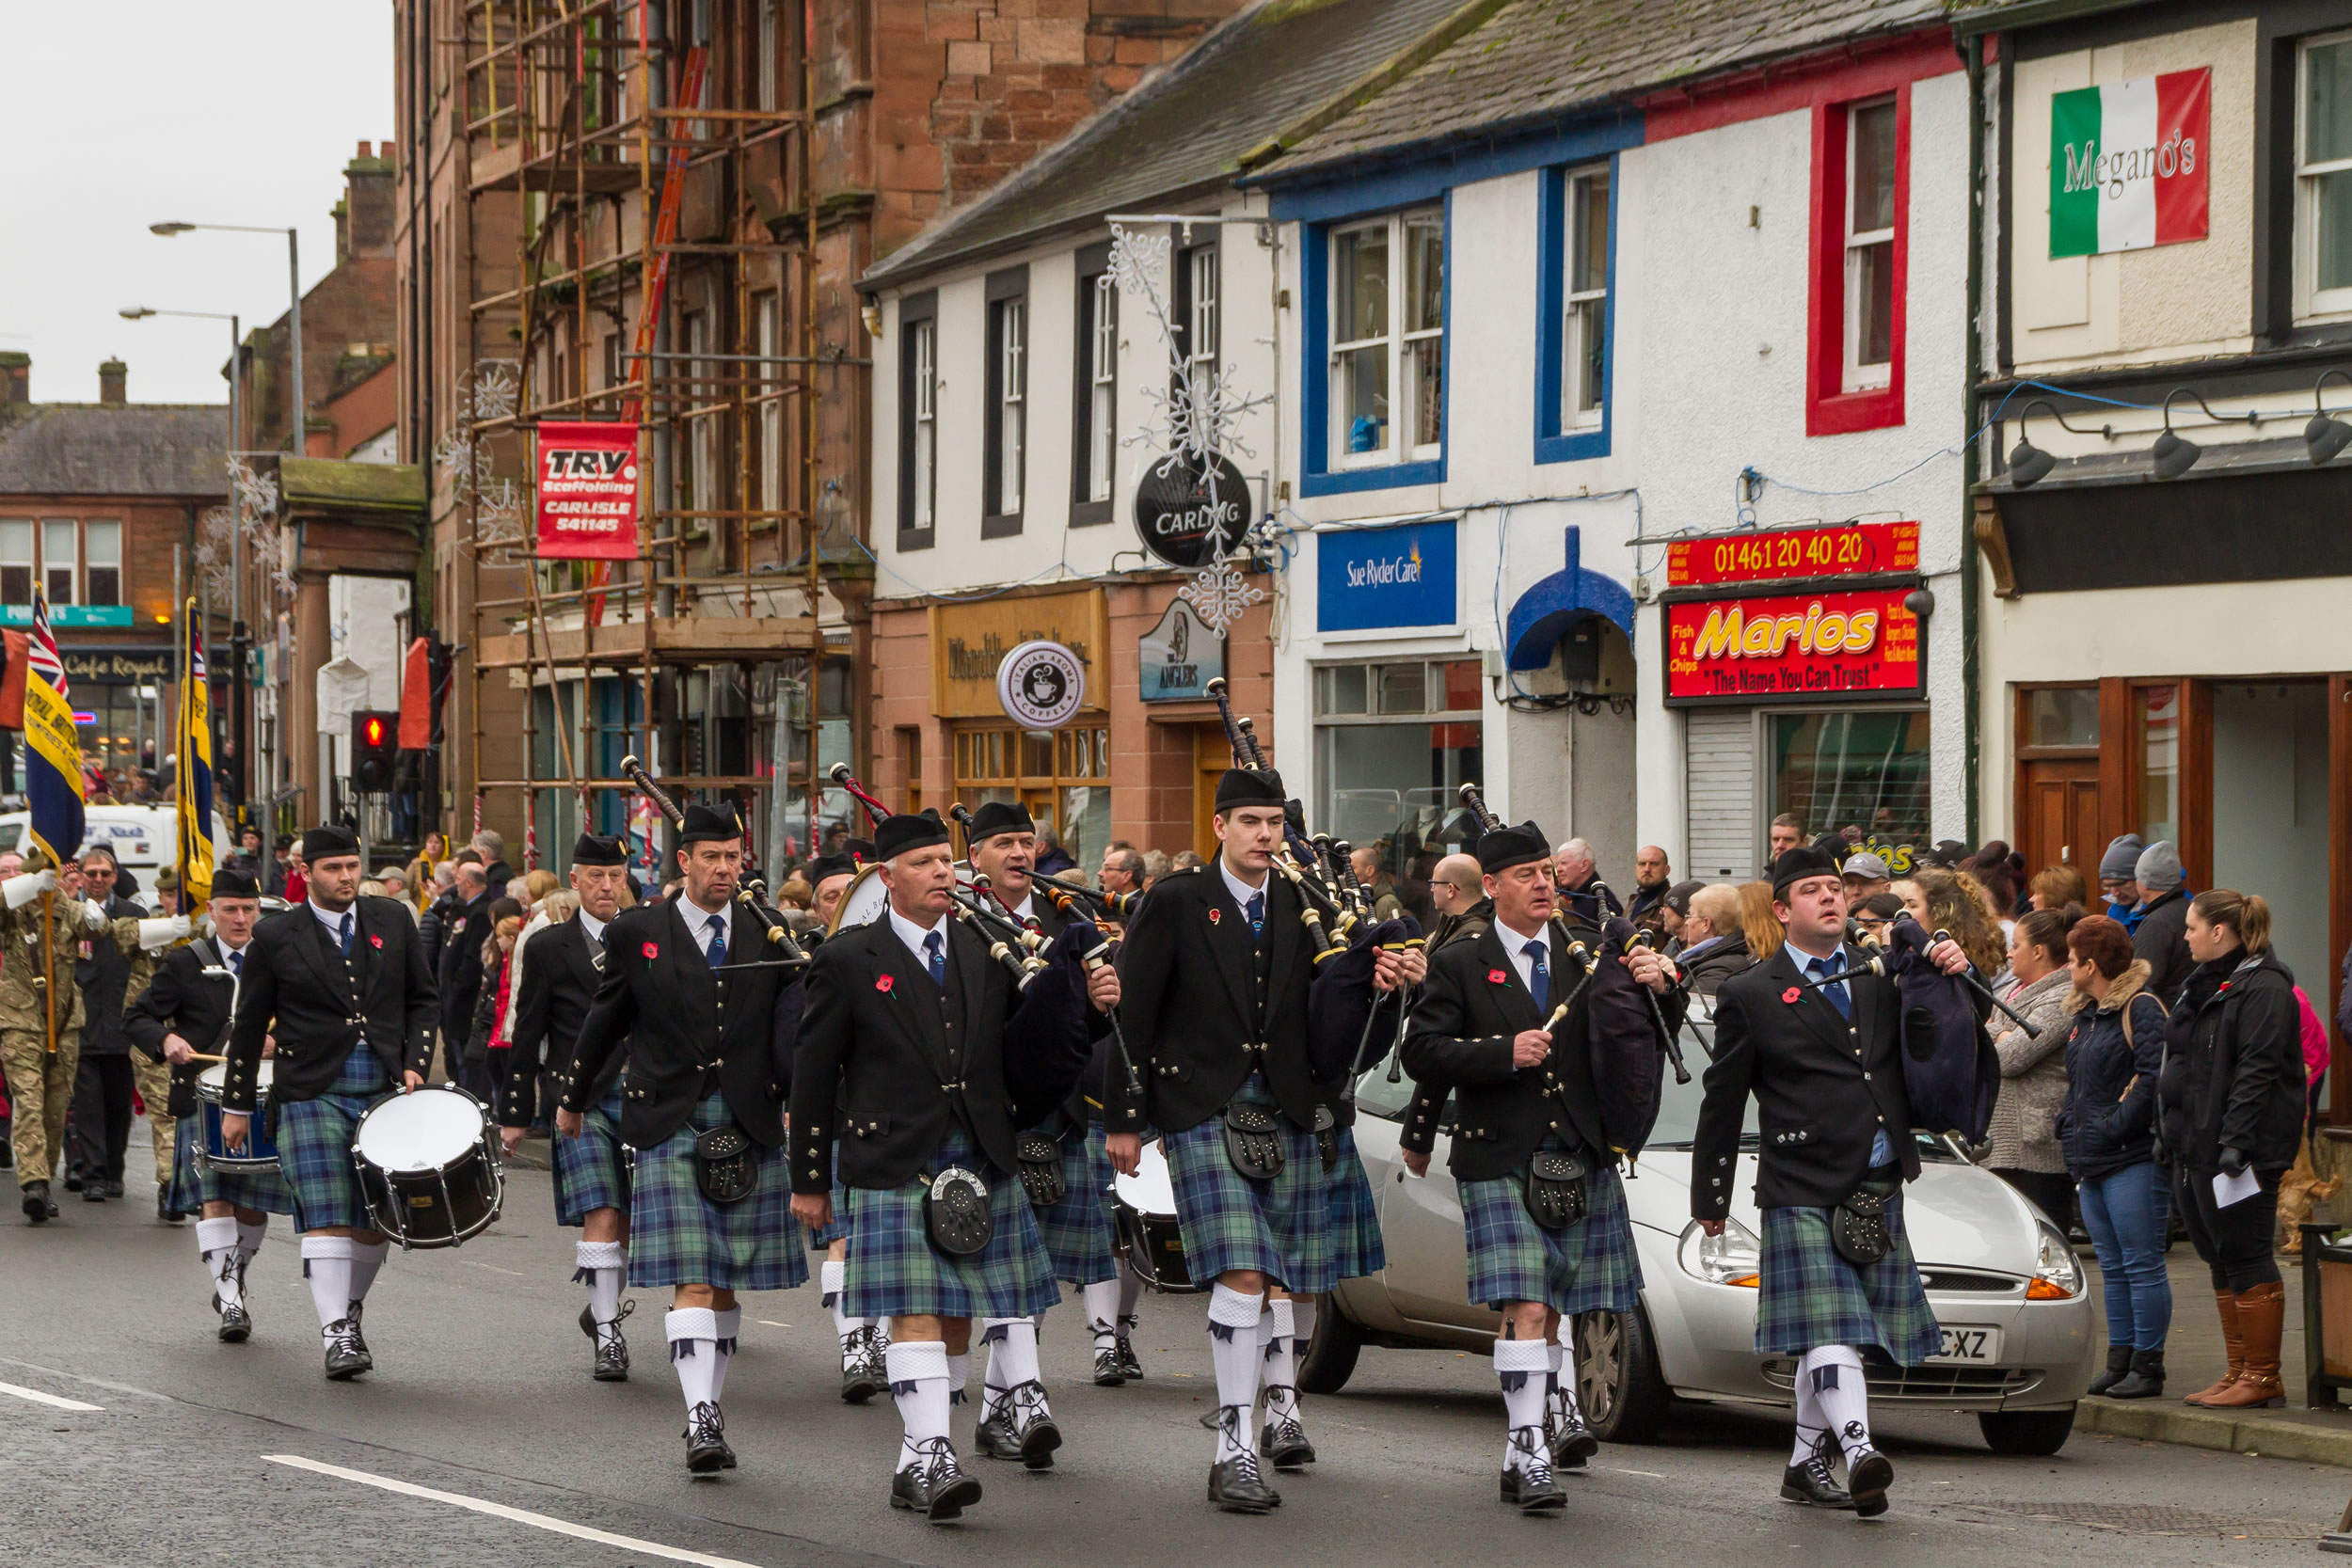 Royal Burgh of Annan Pipe Band at the Remembrance Day Parade in Annan on Sunday 13th of November 2016